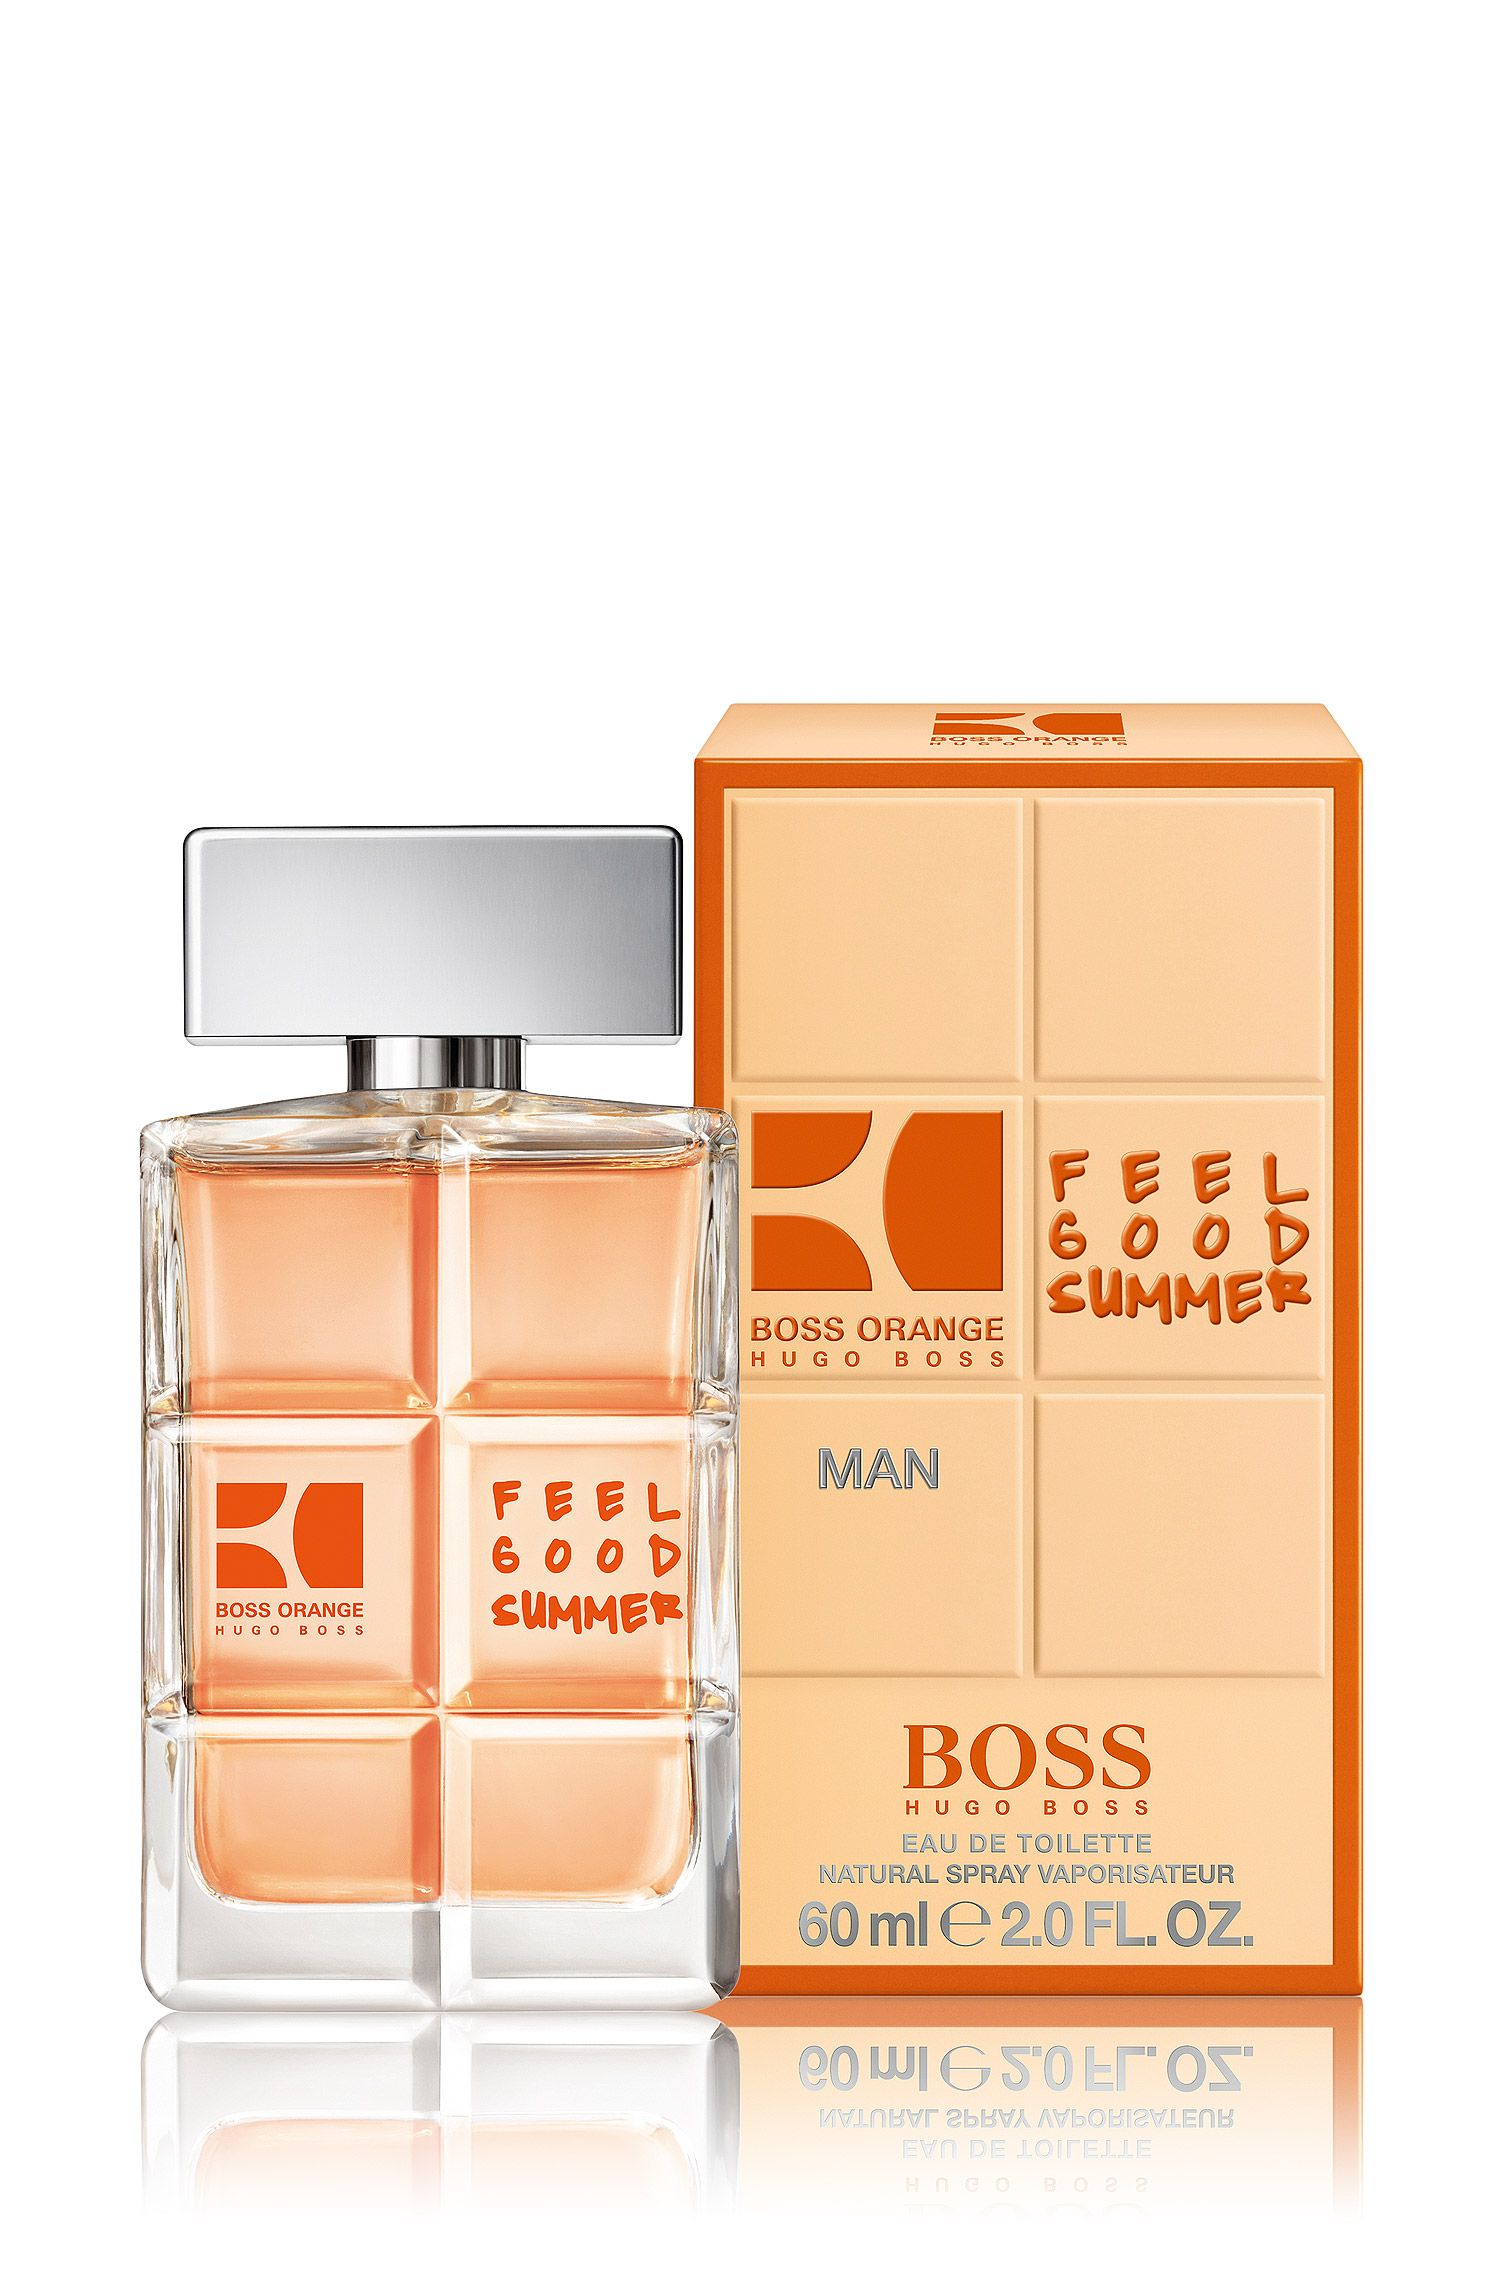 Feel Good Summer Eau de Toilette 60 ml